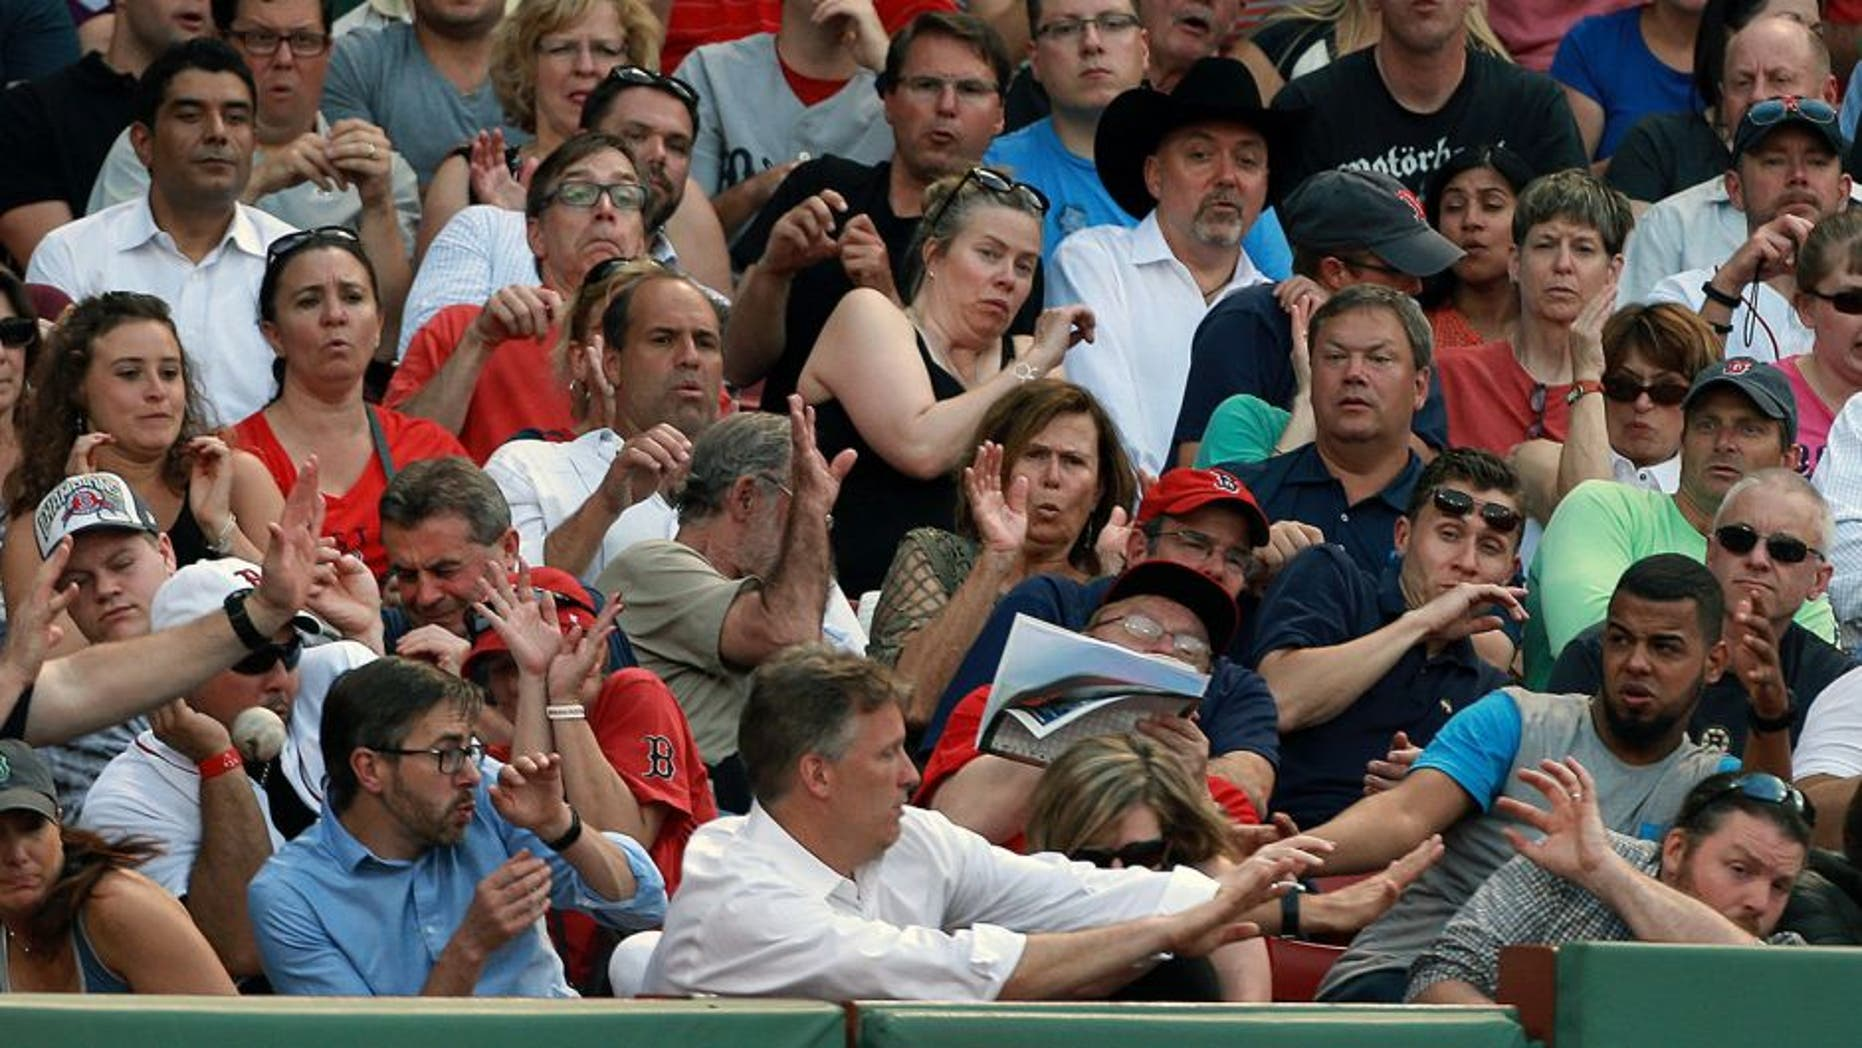 BOSTON - JUNE 17: Fans along the third base line duck for cover as a foul ball screams at them. The Boston Red Sox hosted the Minnesota Twins in a regular season MLB game at Fenway Park. (Photo by Jim Davis/The Boston Globe via Getty Images)